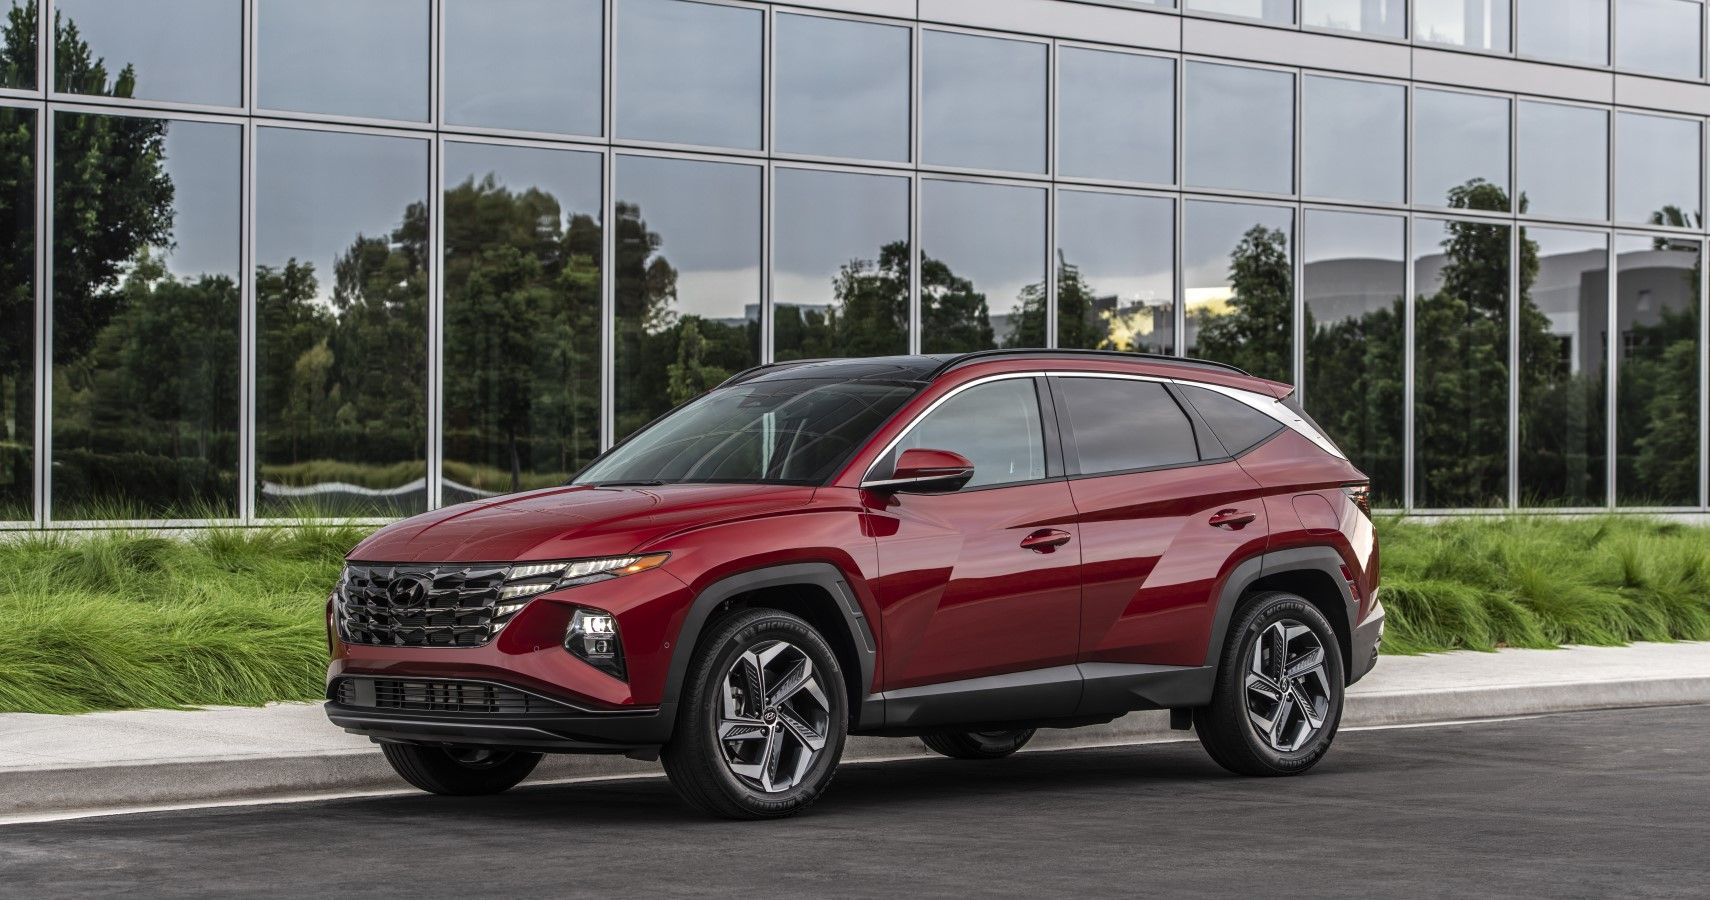 Best Compact Crossover: 2022 Hyundai Tucson Vs 2021 Nissan Rogue